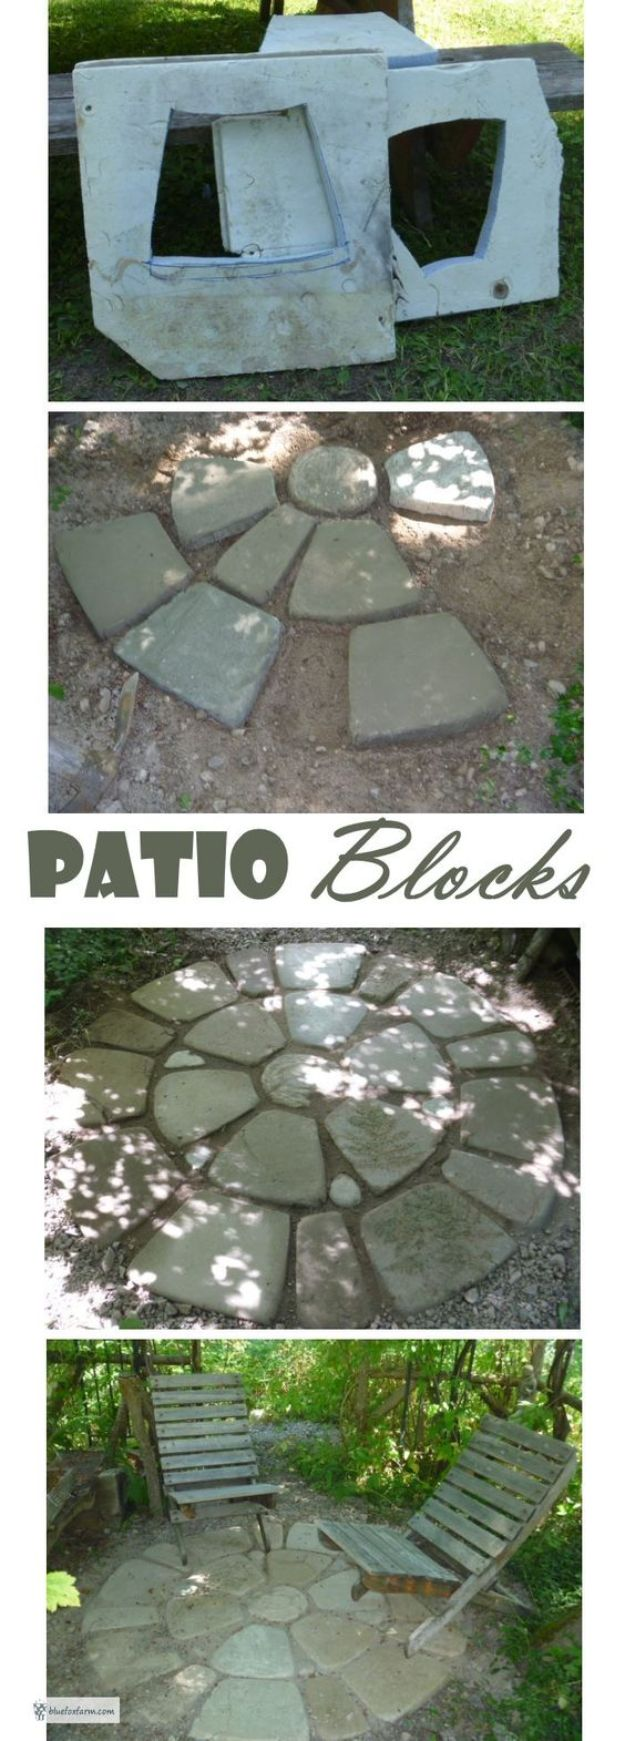 DIY Walkways - Patio Blocks - Do It Yourself Walkway Ideas for Paths to The Front Door and Backyard - Cheap and Easy Pavers and Concrete Path and Stepping Stones - Wood and Edging, Lights, Backyard and Patio Walks With Gravel, Sand, Dirt and Brick http://diyjoy.com/diy-walkways